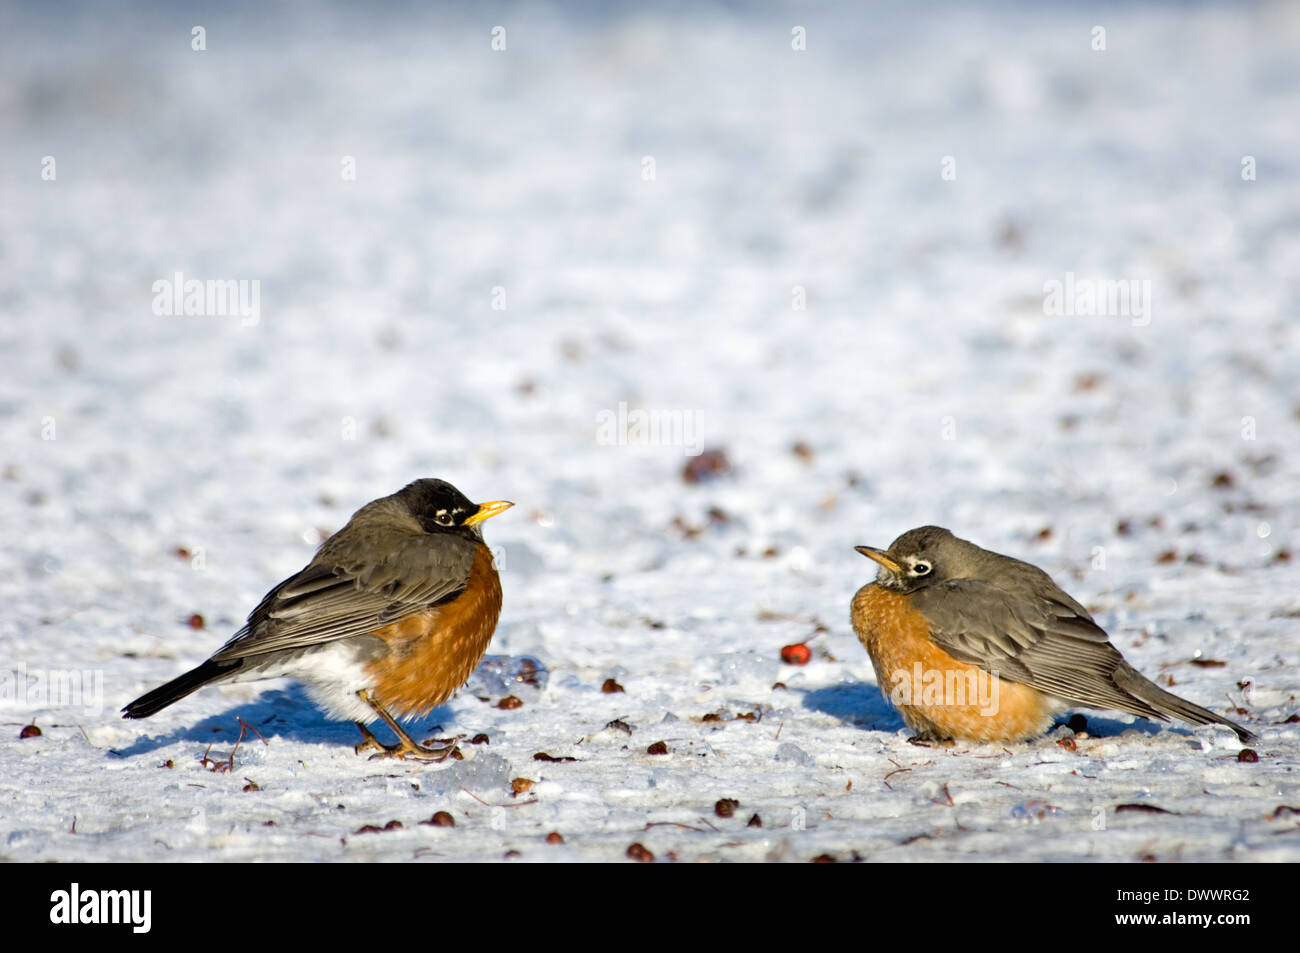 American Robins on Snow Covered Ground Foraging for Haws from a Hawthorn Tree - Stock Image